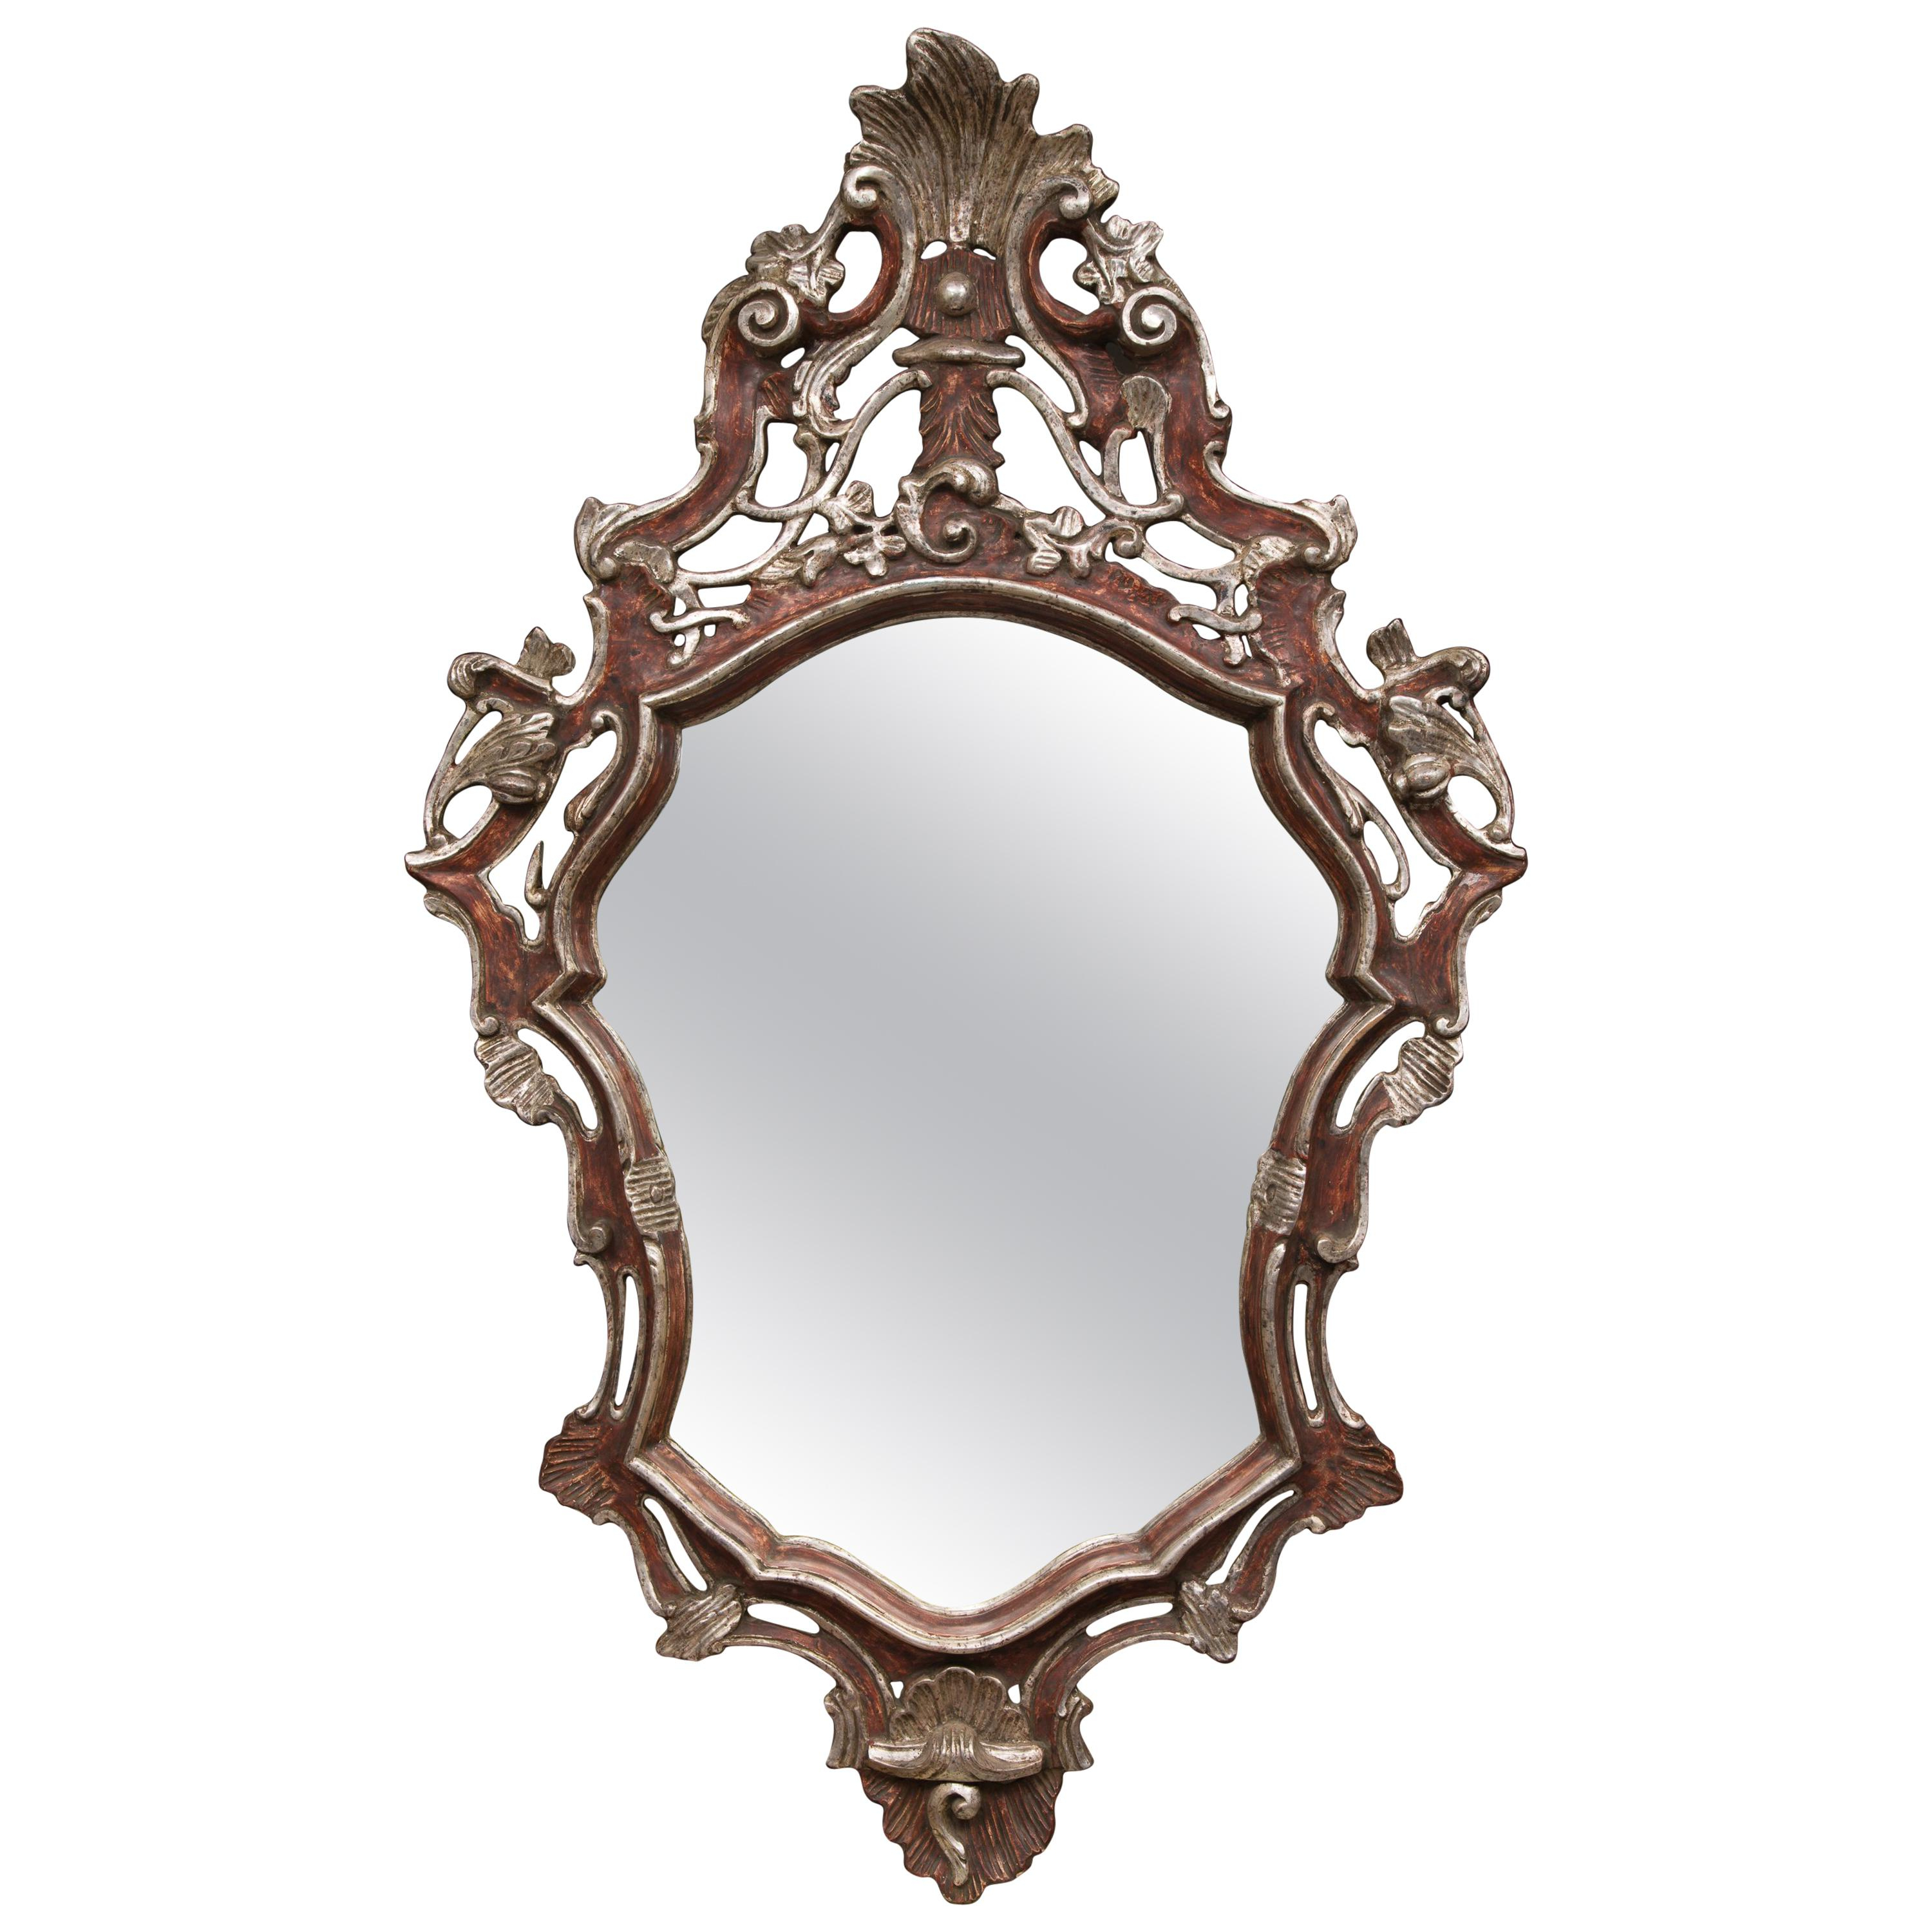 Italian Baroque Style Parcel Silver Gilt Wall Mirror In Well Liked Baroque Wall Mirrors (View 7 of 20)